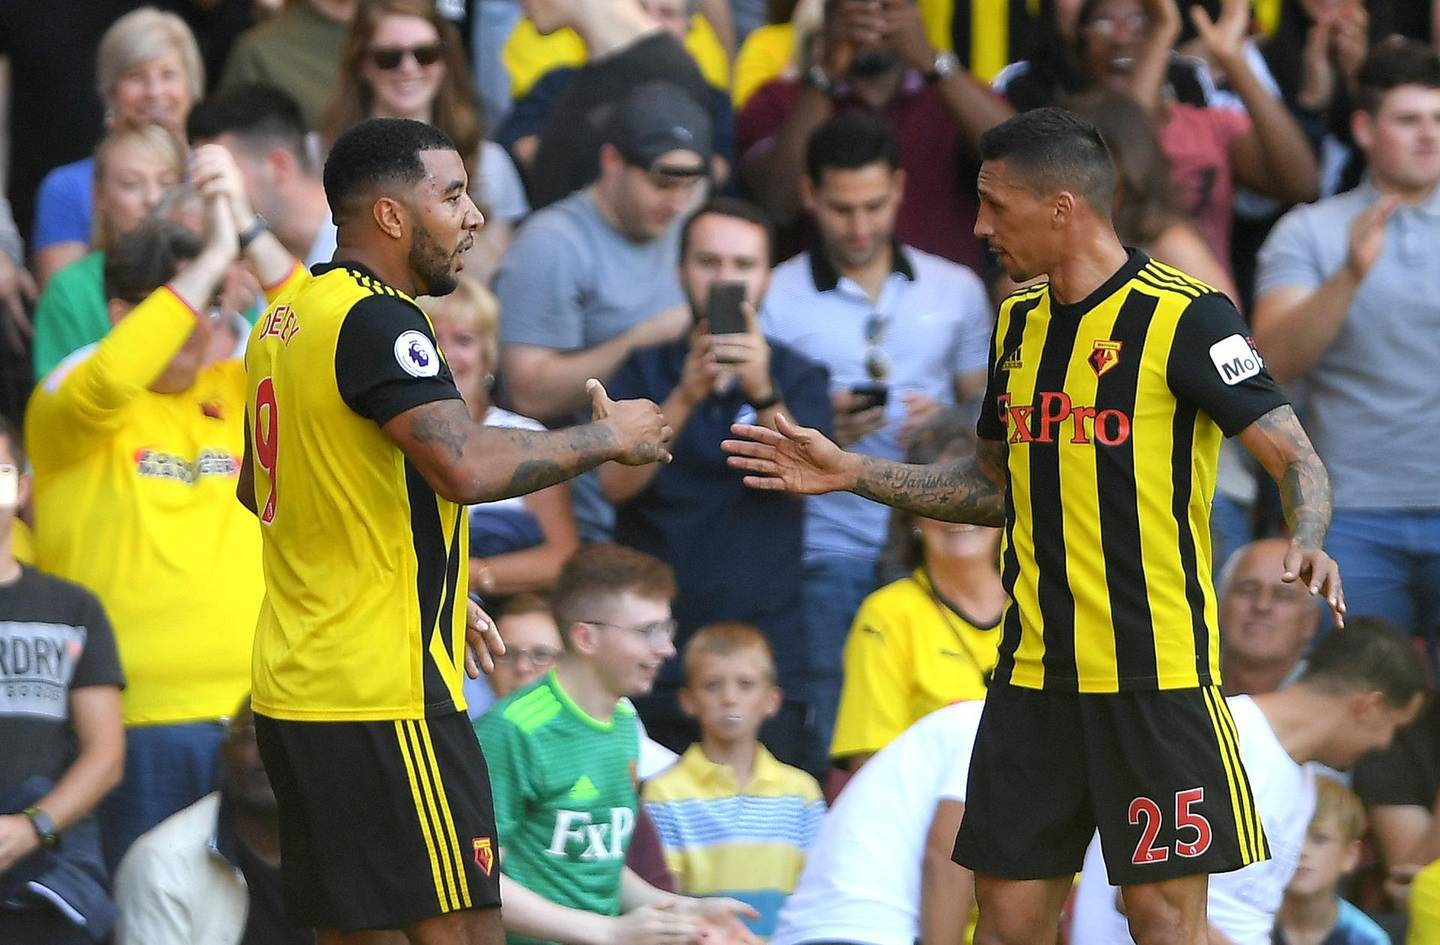 WATFORD, ENGLAND - SEPTEMBER 02:  Troy Deeney of Watford (9) celebrates as he scores his team's first goal with Jose Holebas of Watford (25) during the Premier League match between Watford FC and Tottenham Hotspur at Vicarage Road on September 2, 2018 in Watford, United Kingdom.  (Photo by Mike Hewitt/Getty Images)